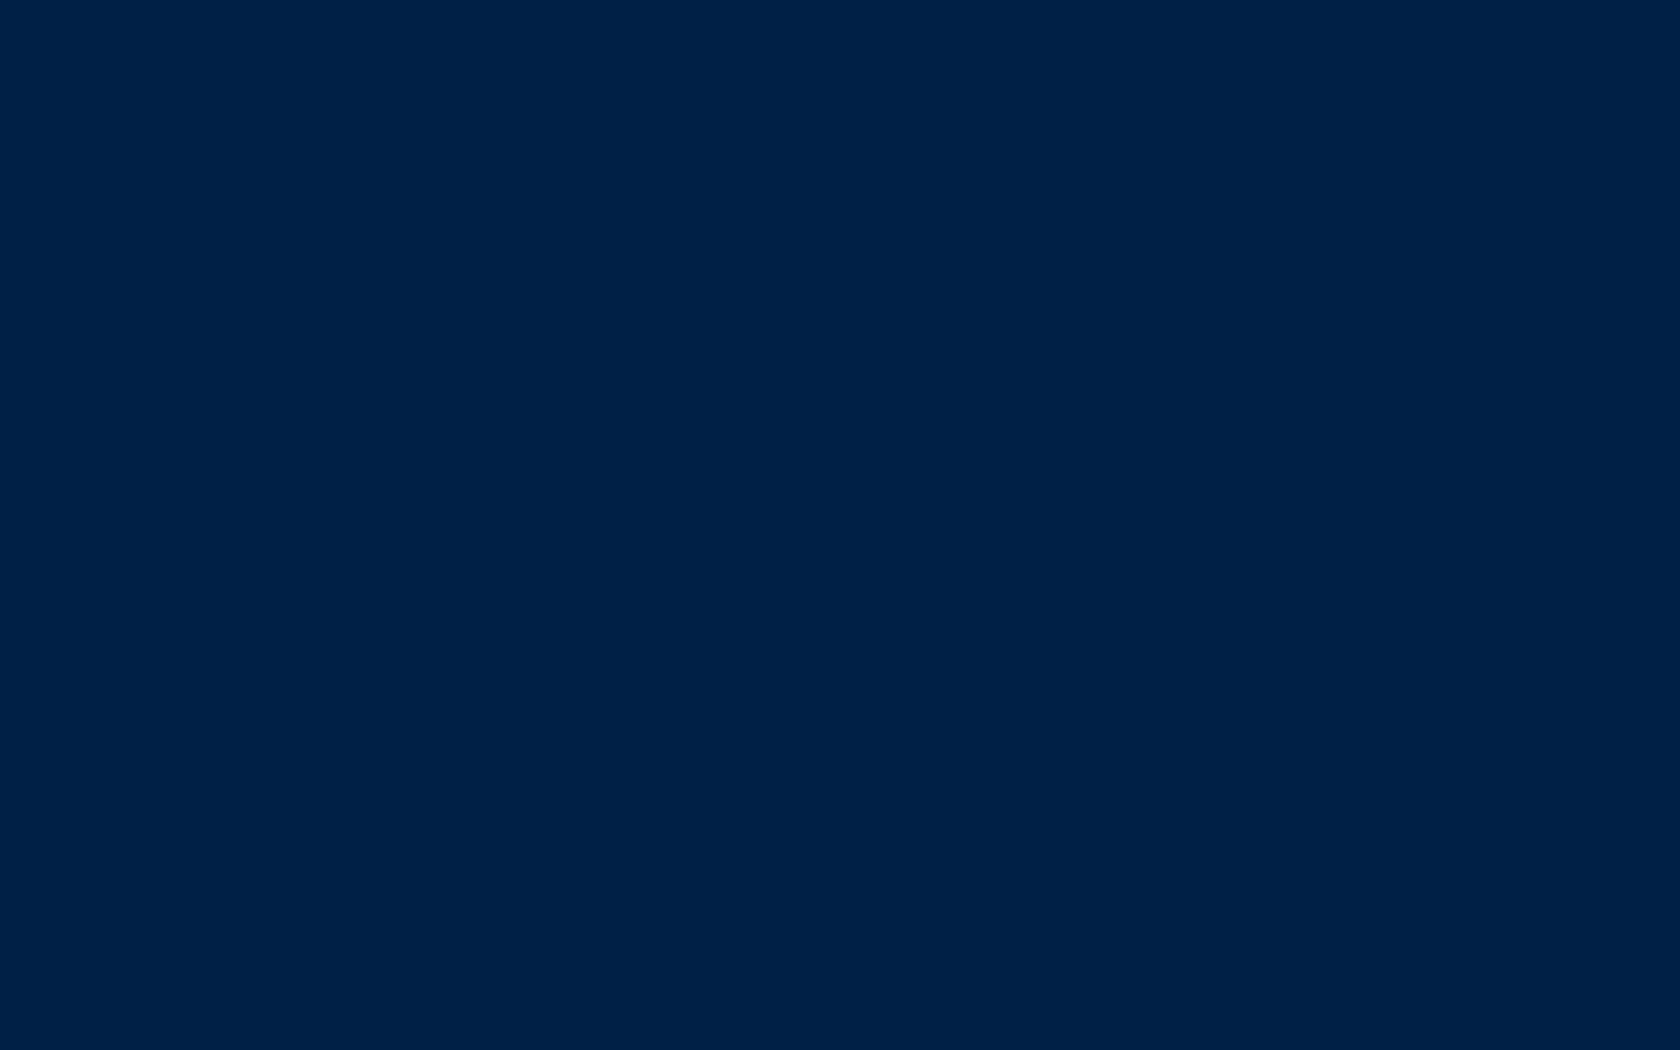 1680x1050 Oxford Blue Solid Color Background